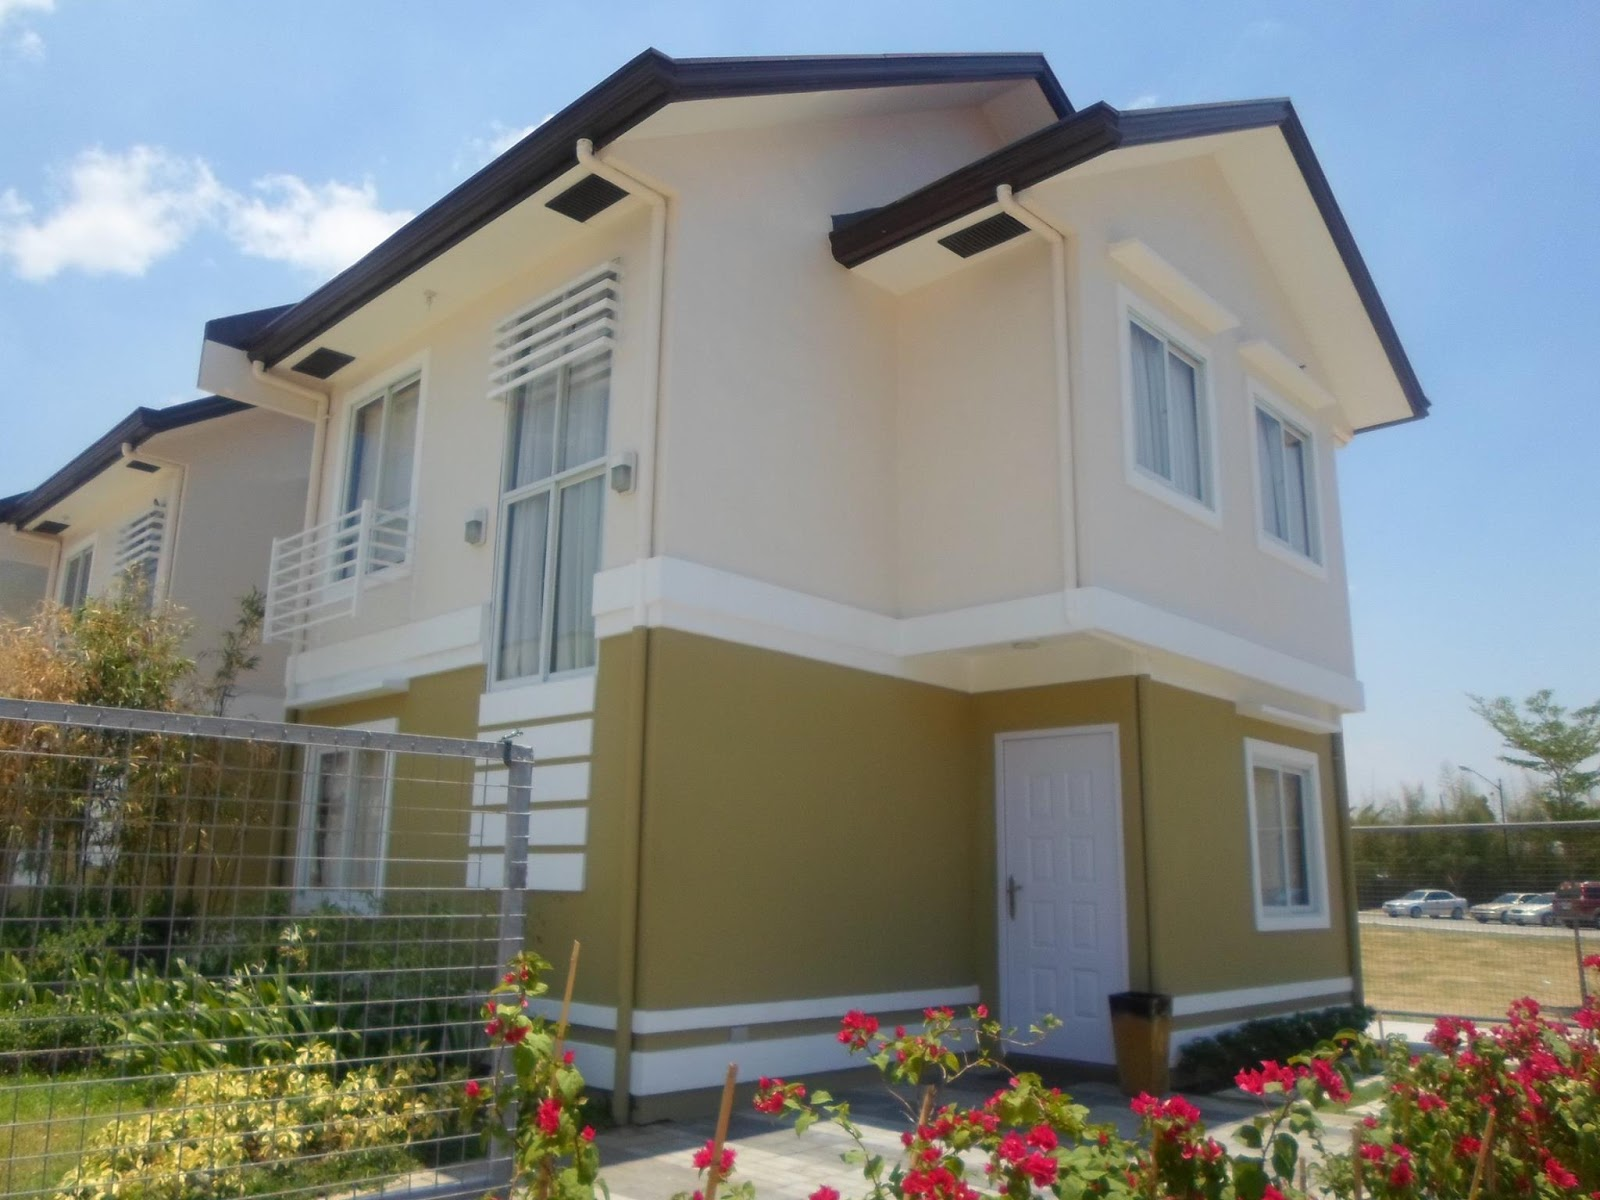 4BR Candice Model House and Lot for Sale in Lancaster New City, Gen. Trias Cavite